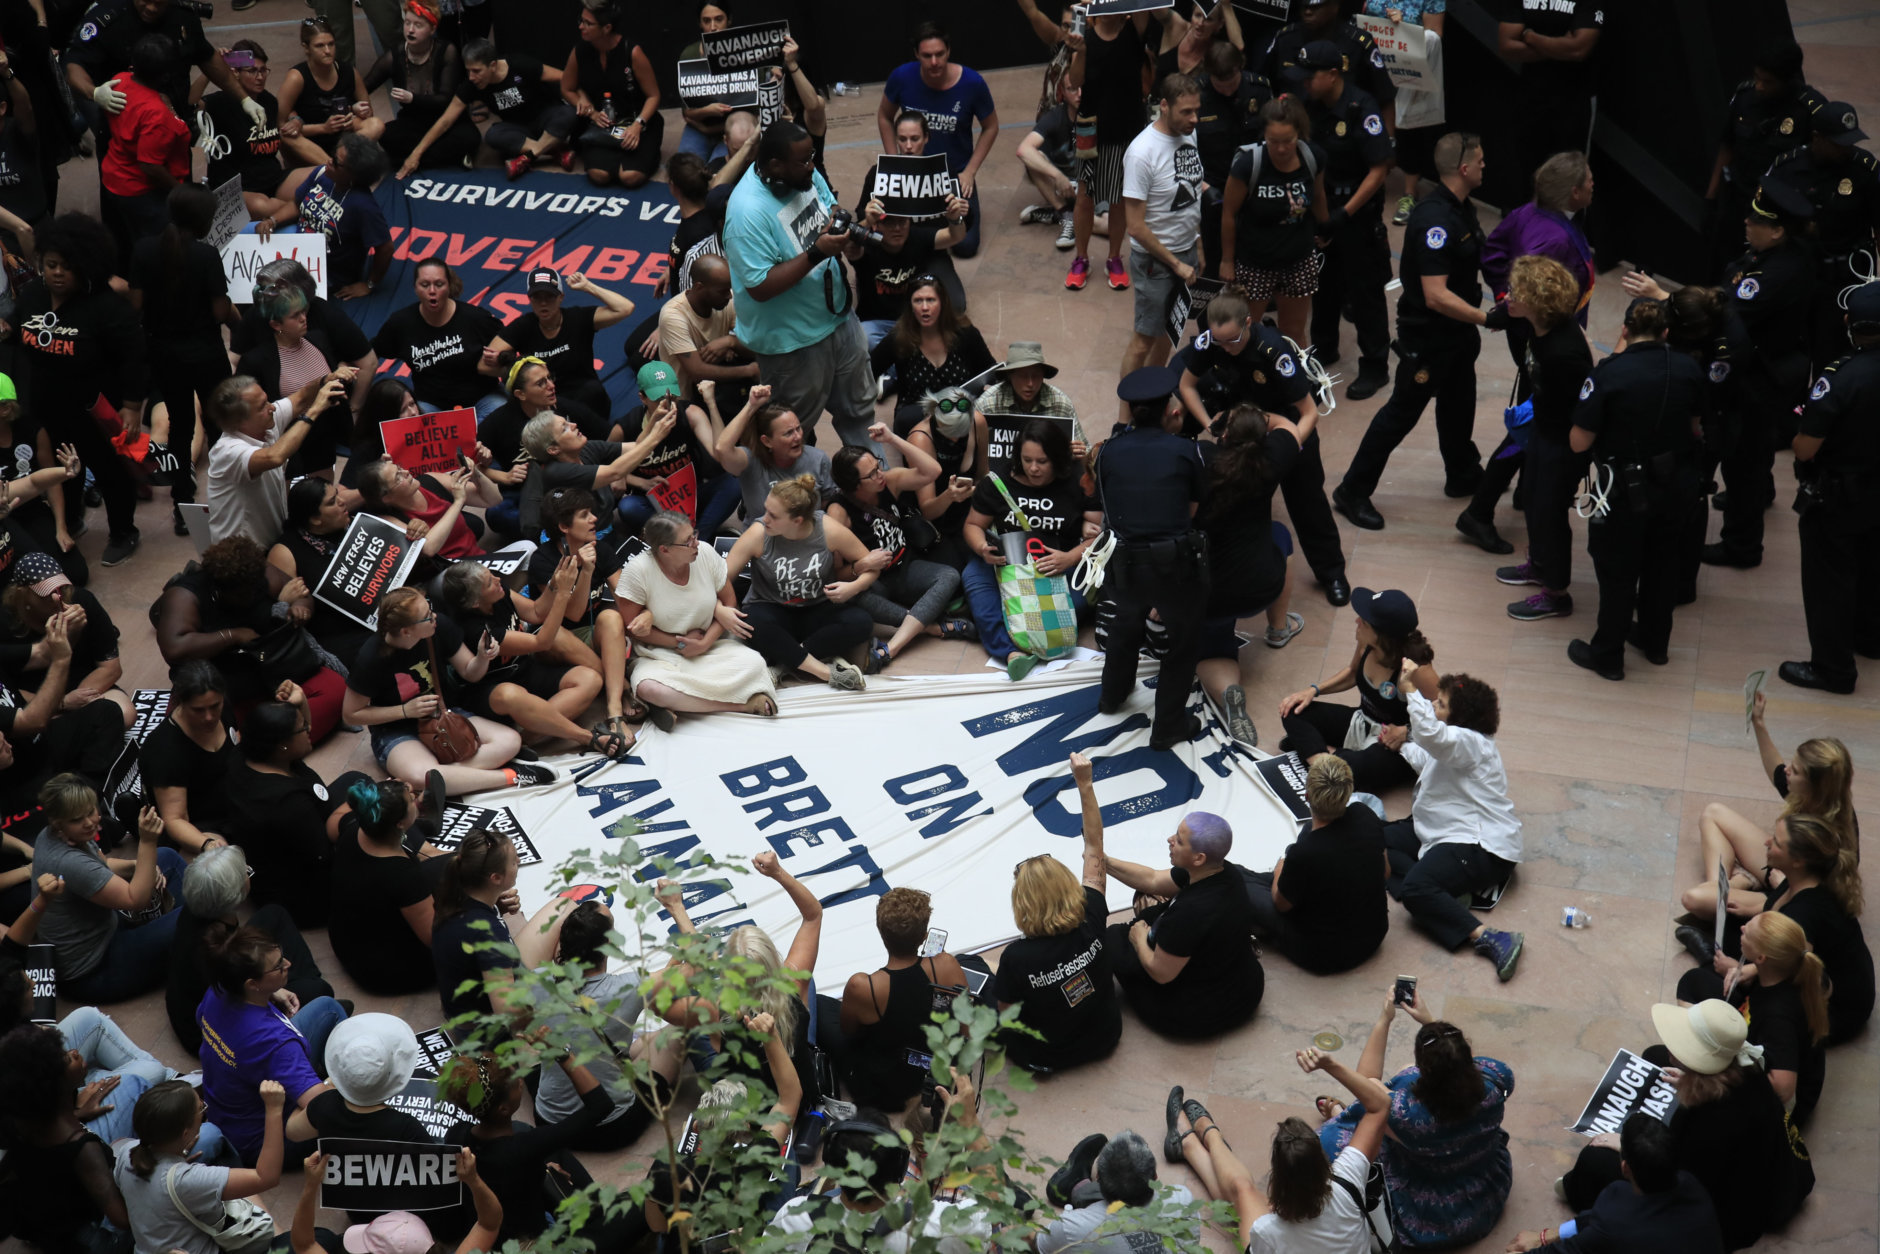 Protesters against Supreme Court nominee Brett Kavanaugh gather at Hart Senate Office Building atrium on Capitol Hill in Washington, Thursday, Oct. 4, 2018. (AP Photo/Manuel Balce Ceneta)